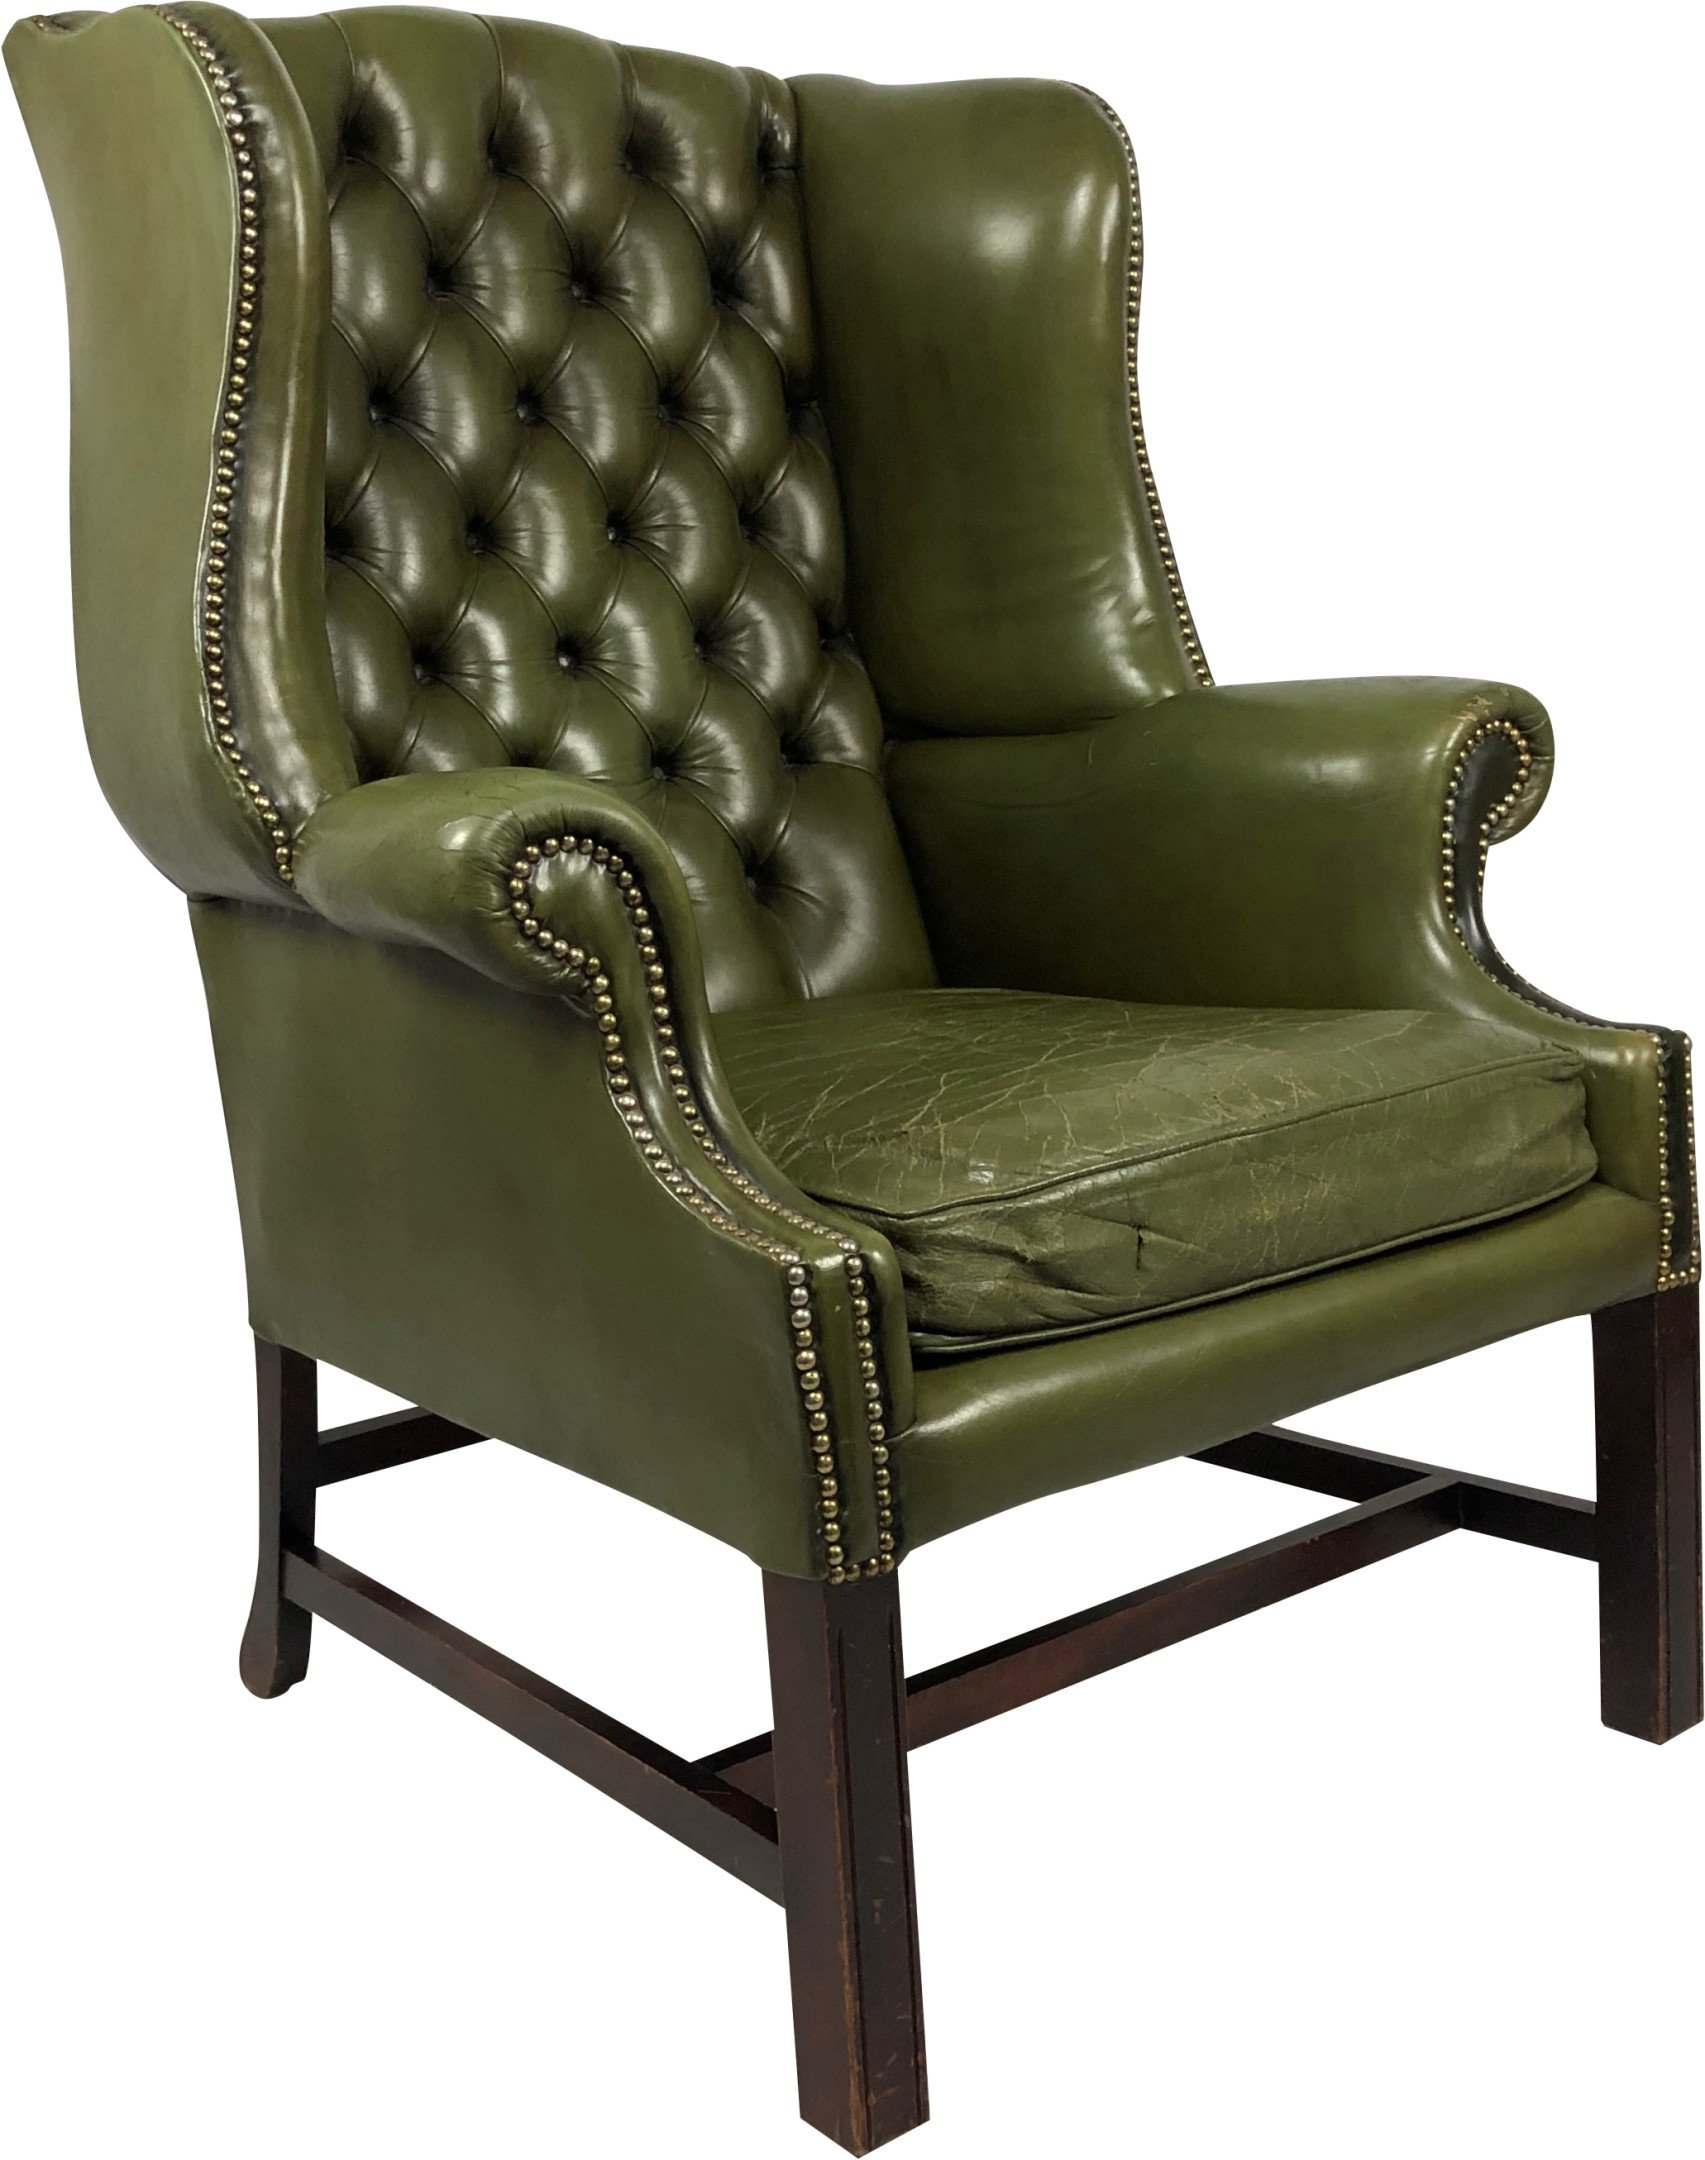 Armchair, United Kingdom, 19th C.